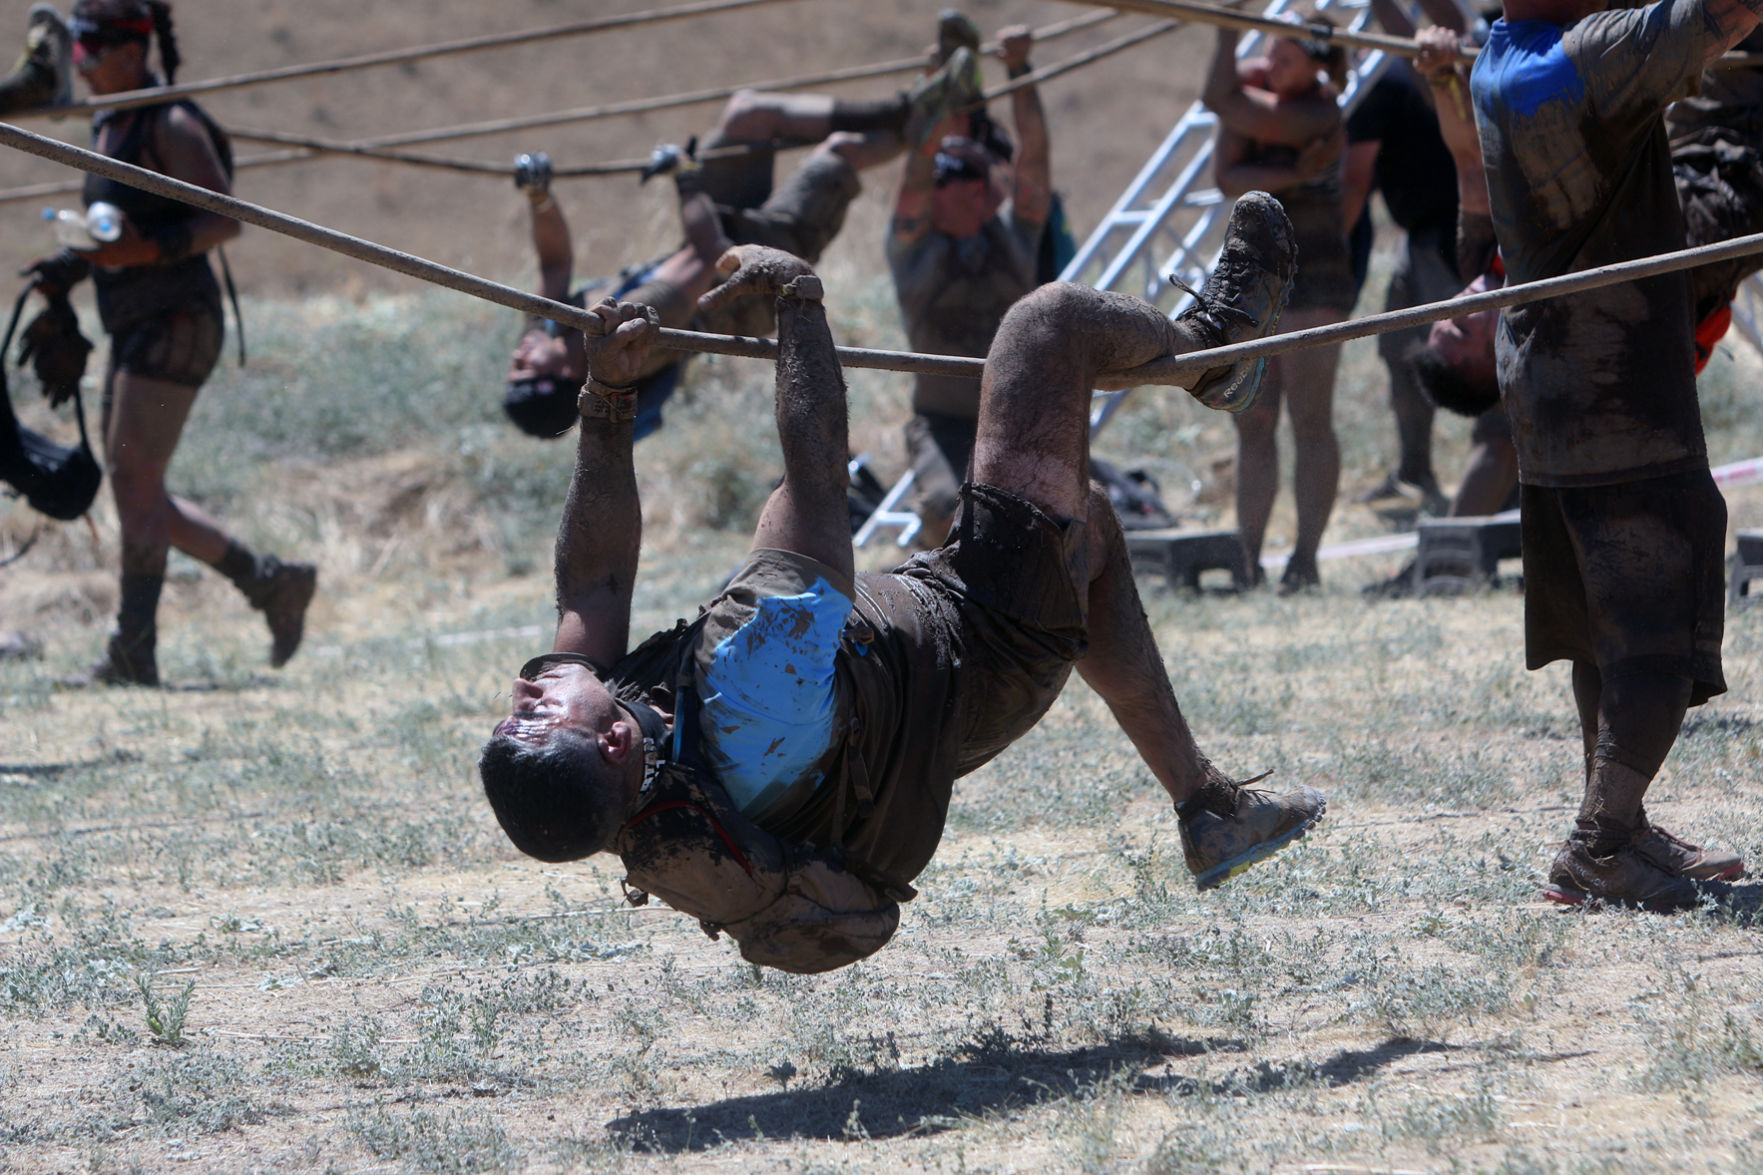 Thousands swarm to Diablo Grande for Spartan Race Golden State